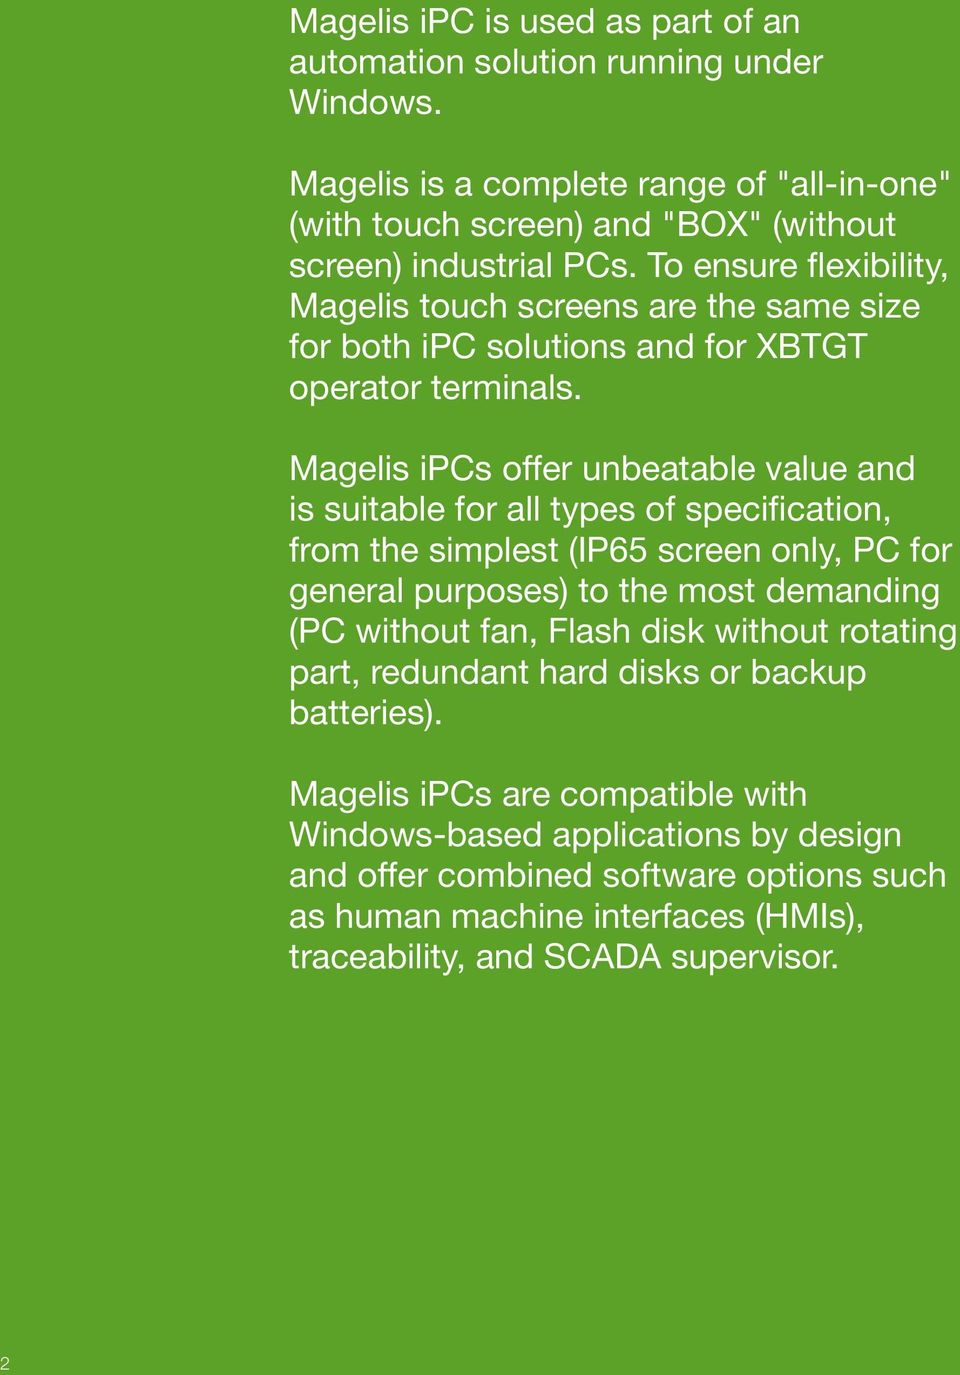 Magelis ipcs offer unbeatable value and is suitable for all types of specification, from the simplest (IP65 screen only, PC for general s) to the most demanding (PC without fan, Flash